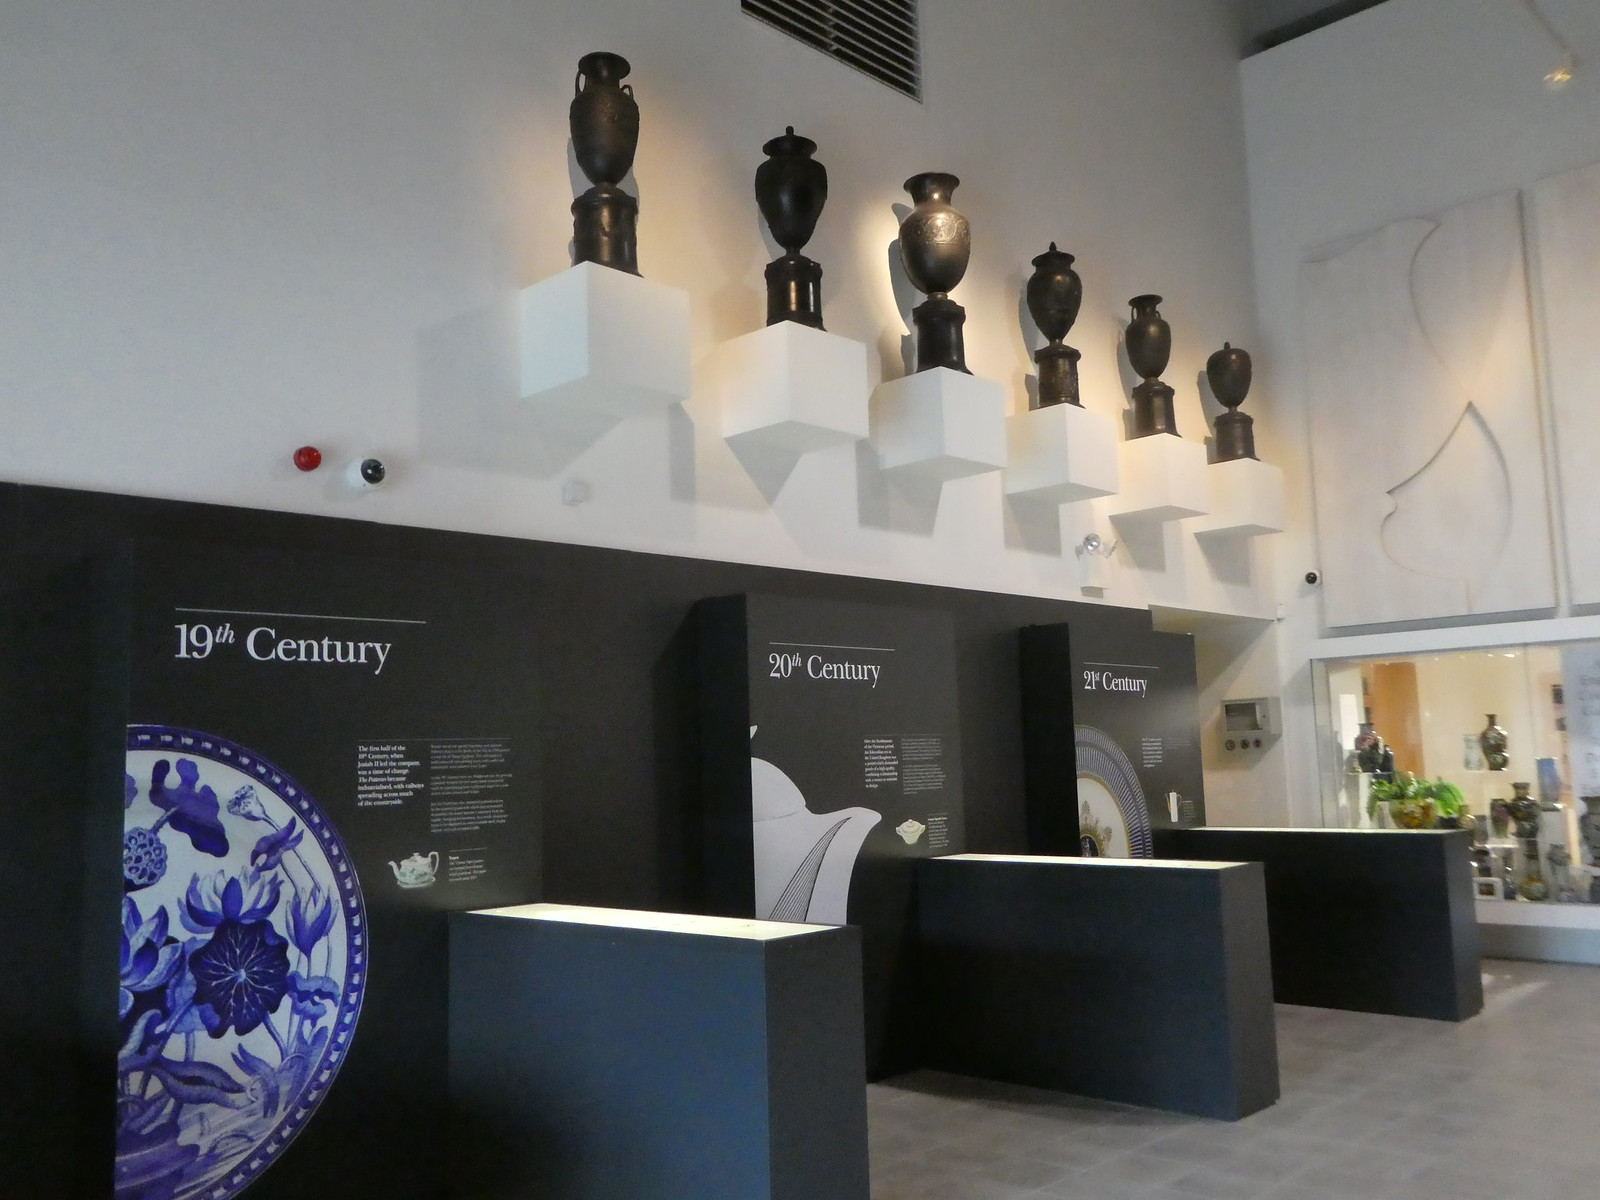 Wedgwood Museum, World of Wedgwood, Barlaston, Stoke-on-Trent